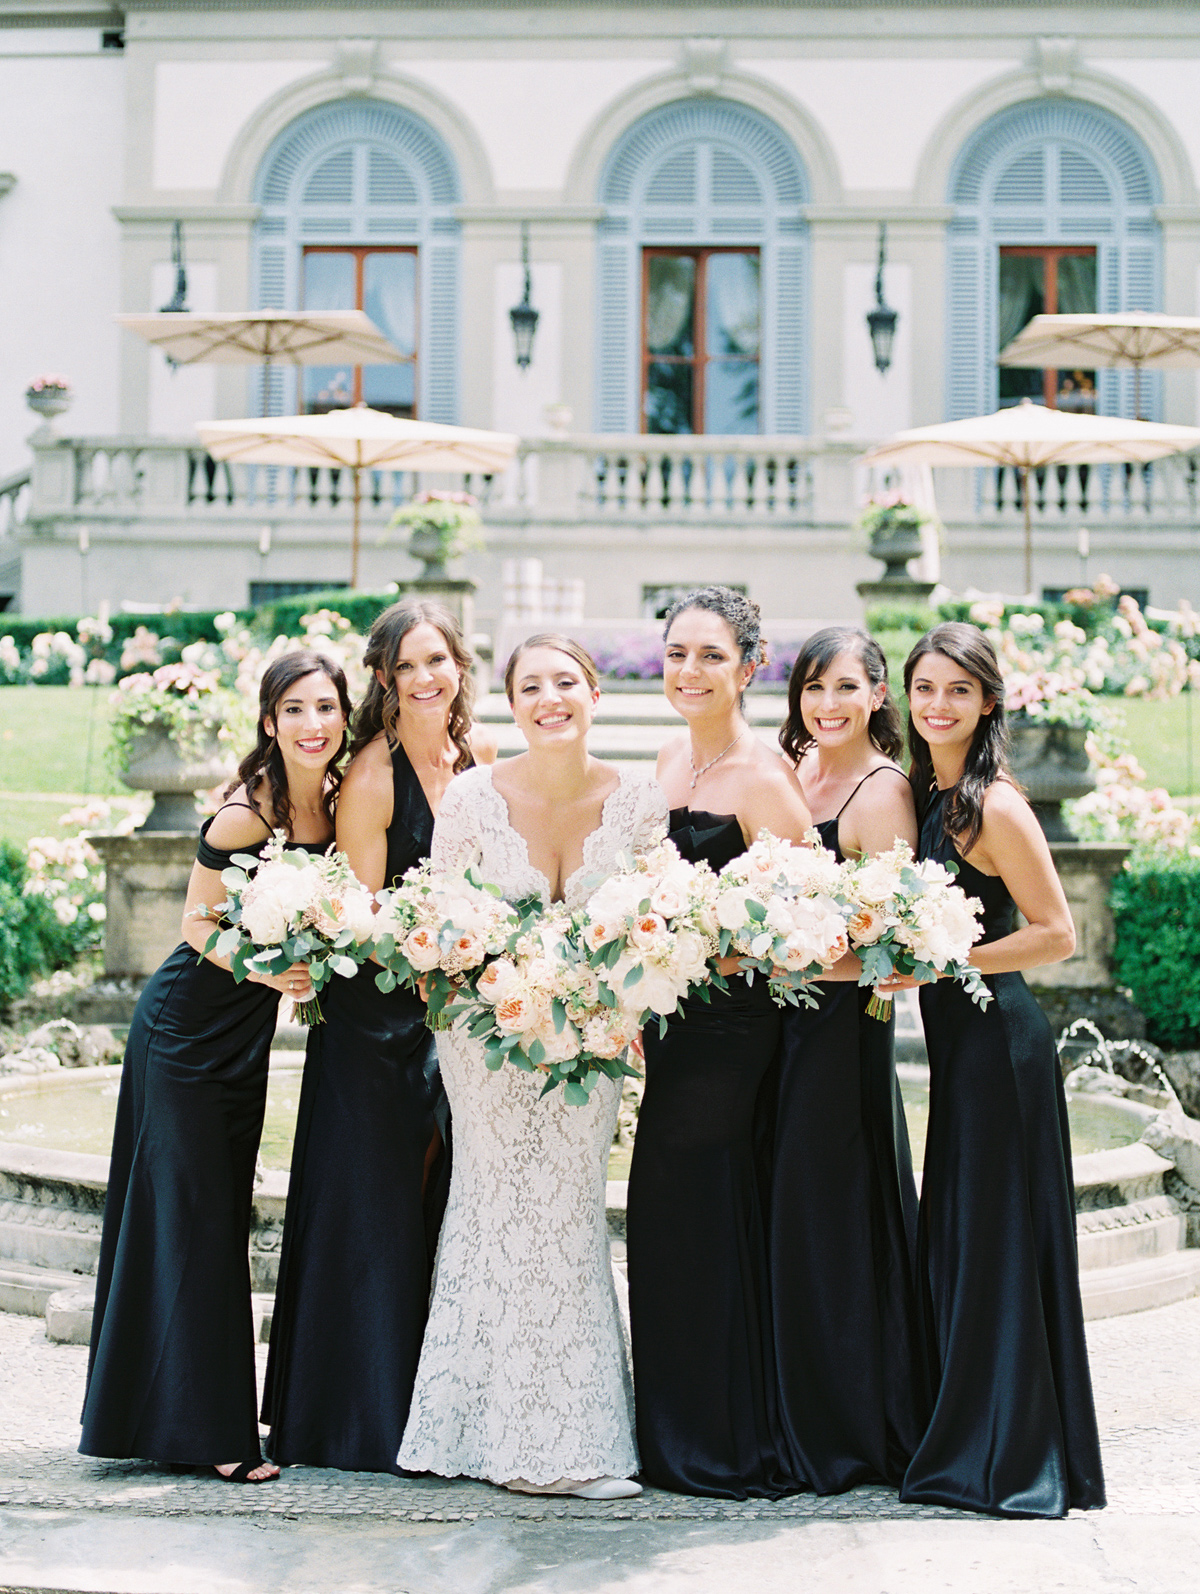 saghar ben wedding bridal party in black